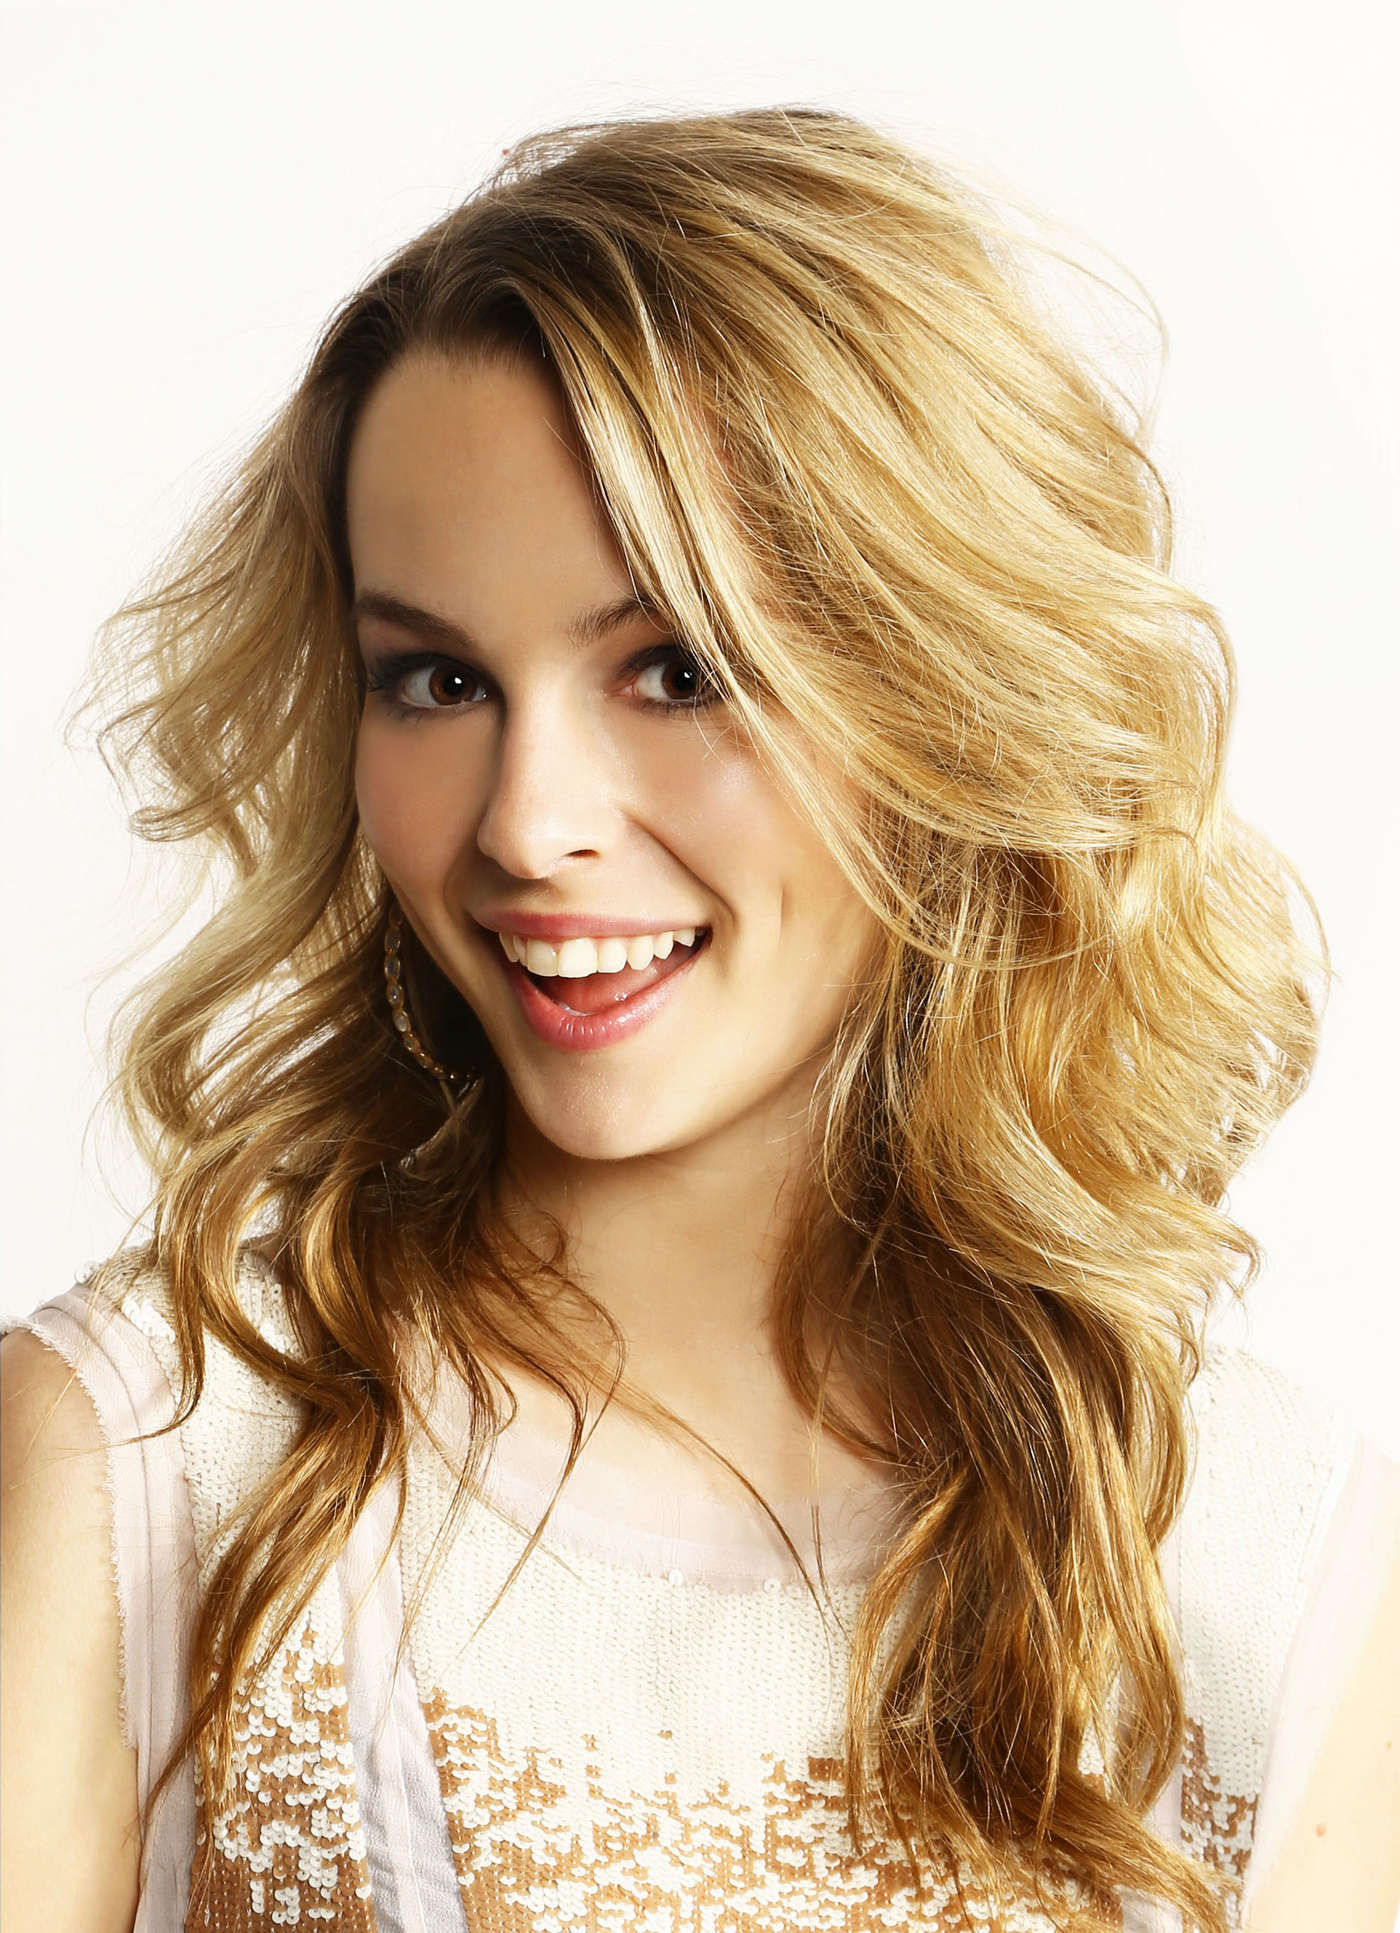 IRLANDA (fiestas paganas, filtros de amor y maldiciones) -En CONSTRUCCION- - Página 2 Bridgit-mendler-at-z100s-jingle-ball-2012-photoshoot-02